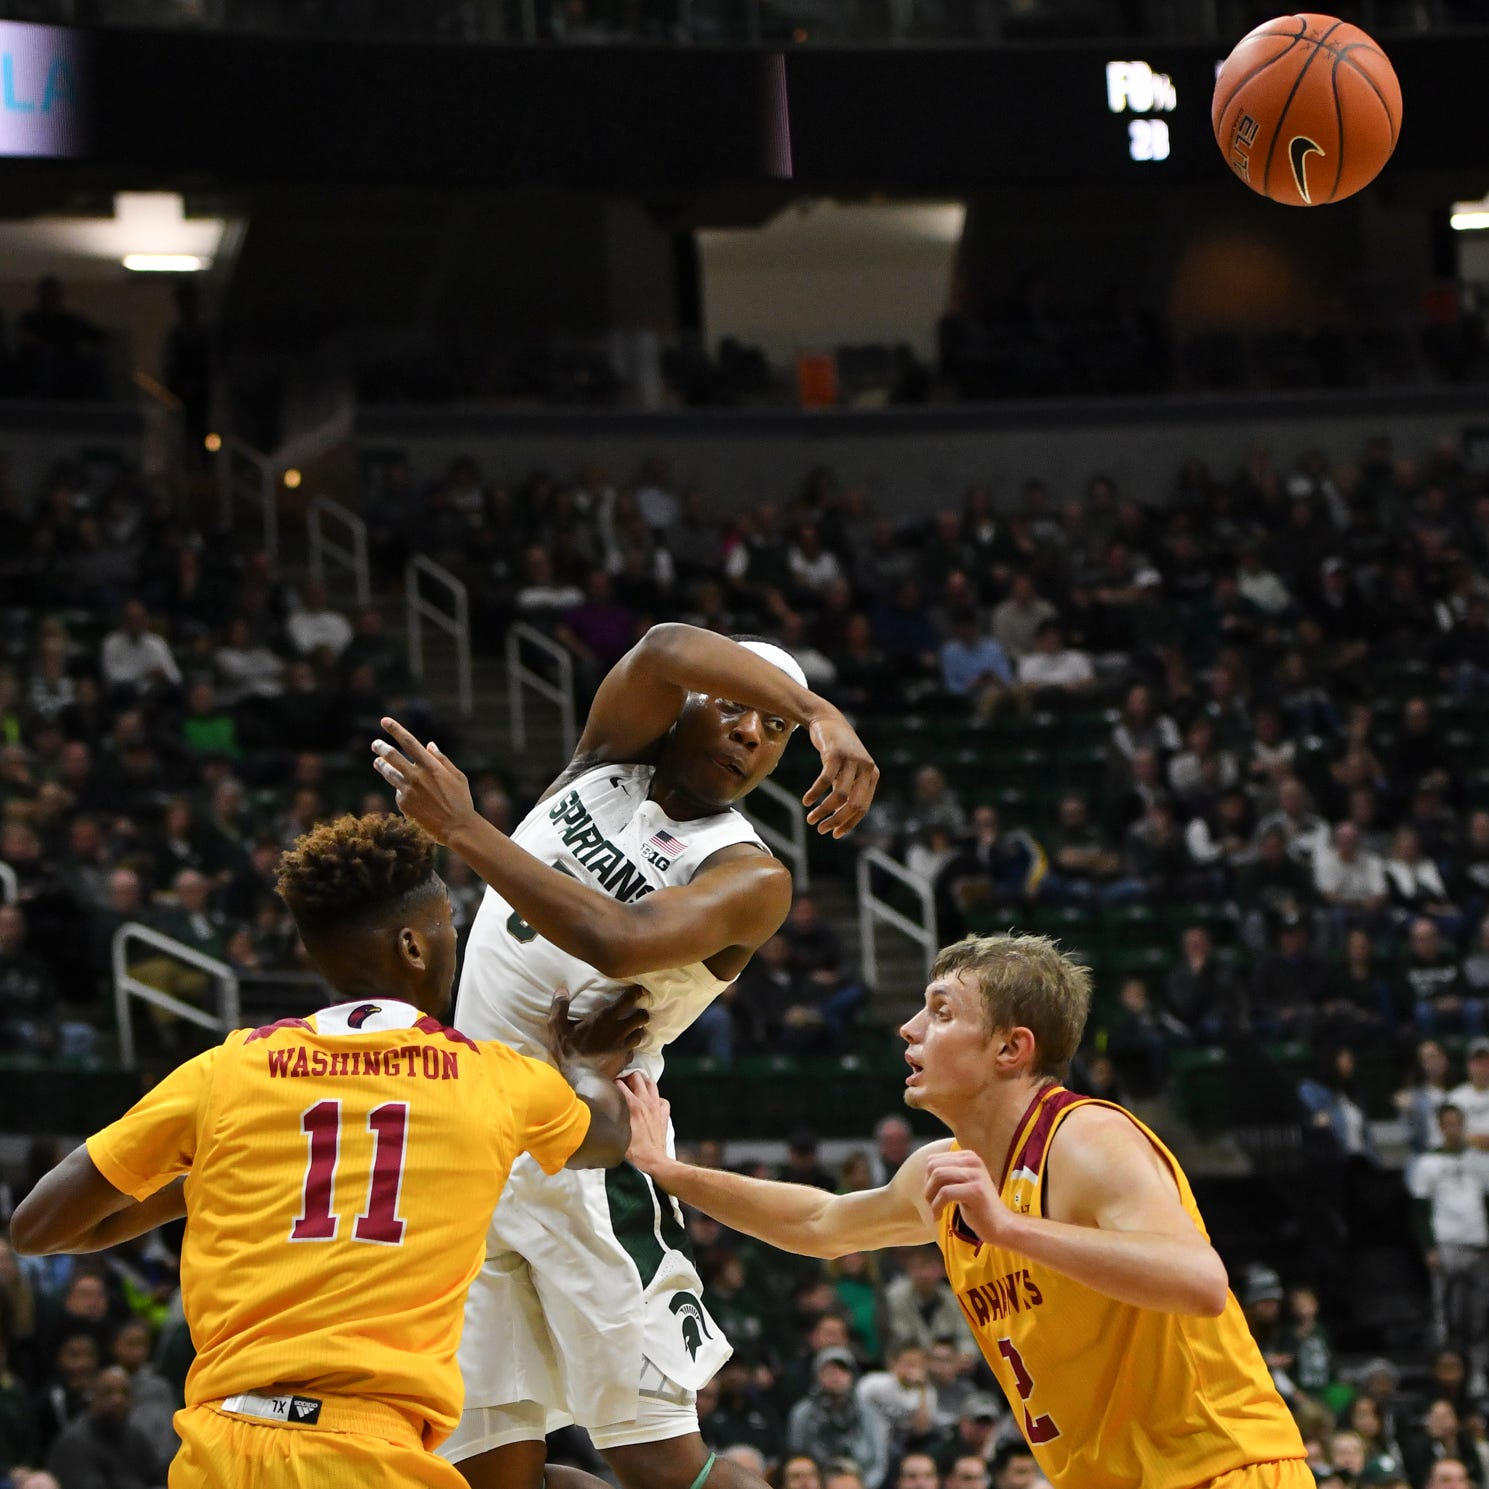 Couch: 3 quick takes on Michigan State's 80-59 win over Louisiana-Monroe